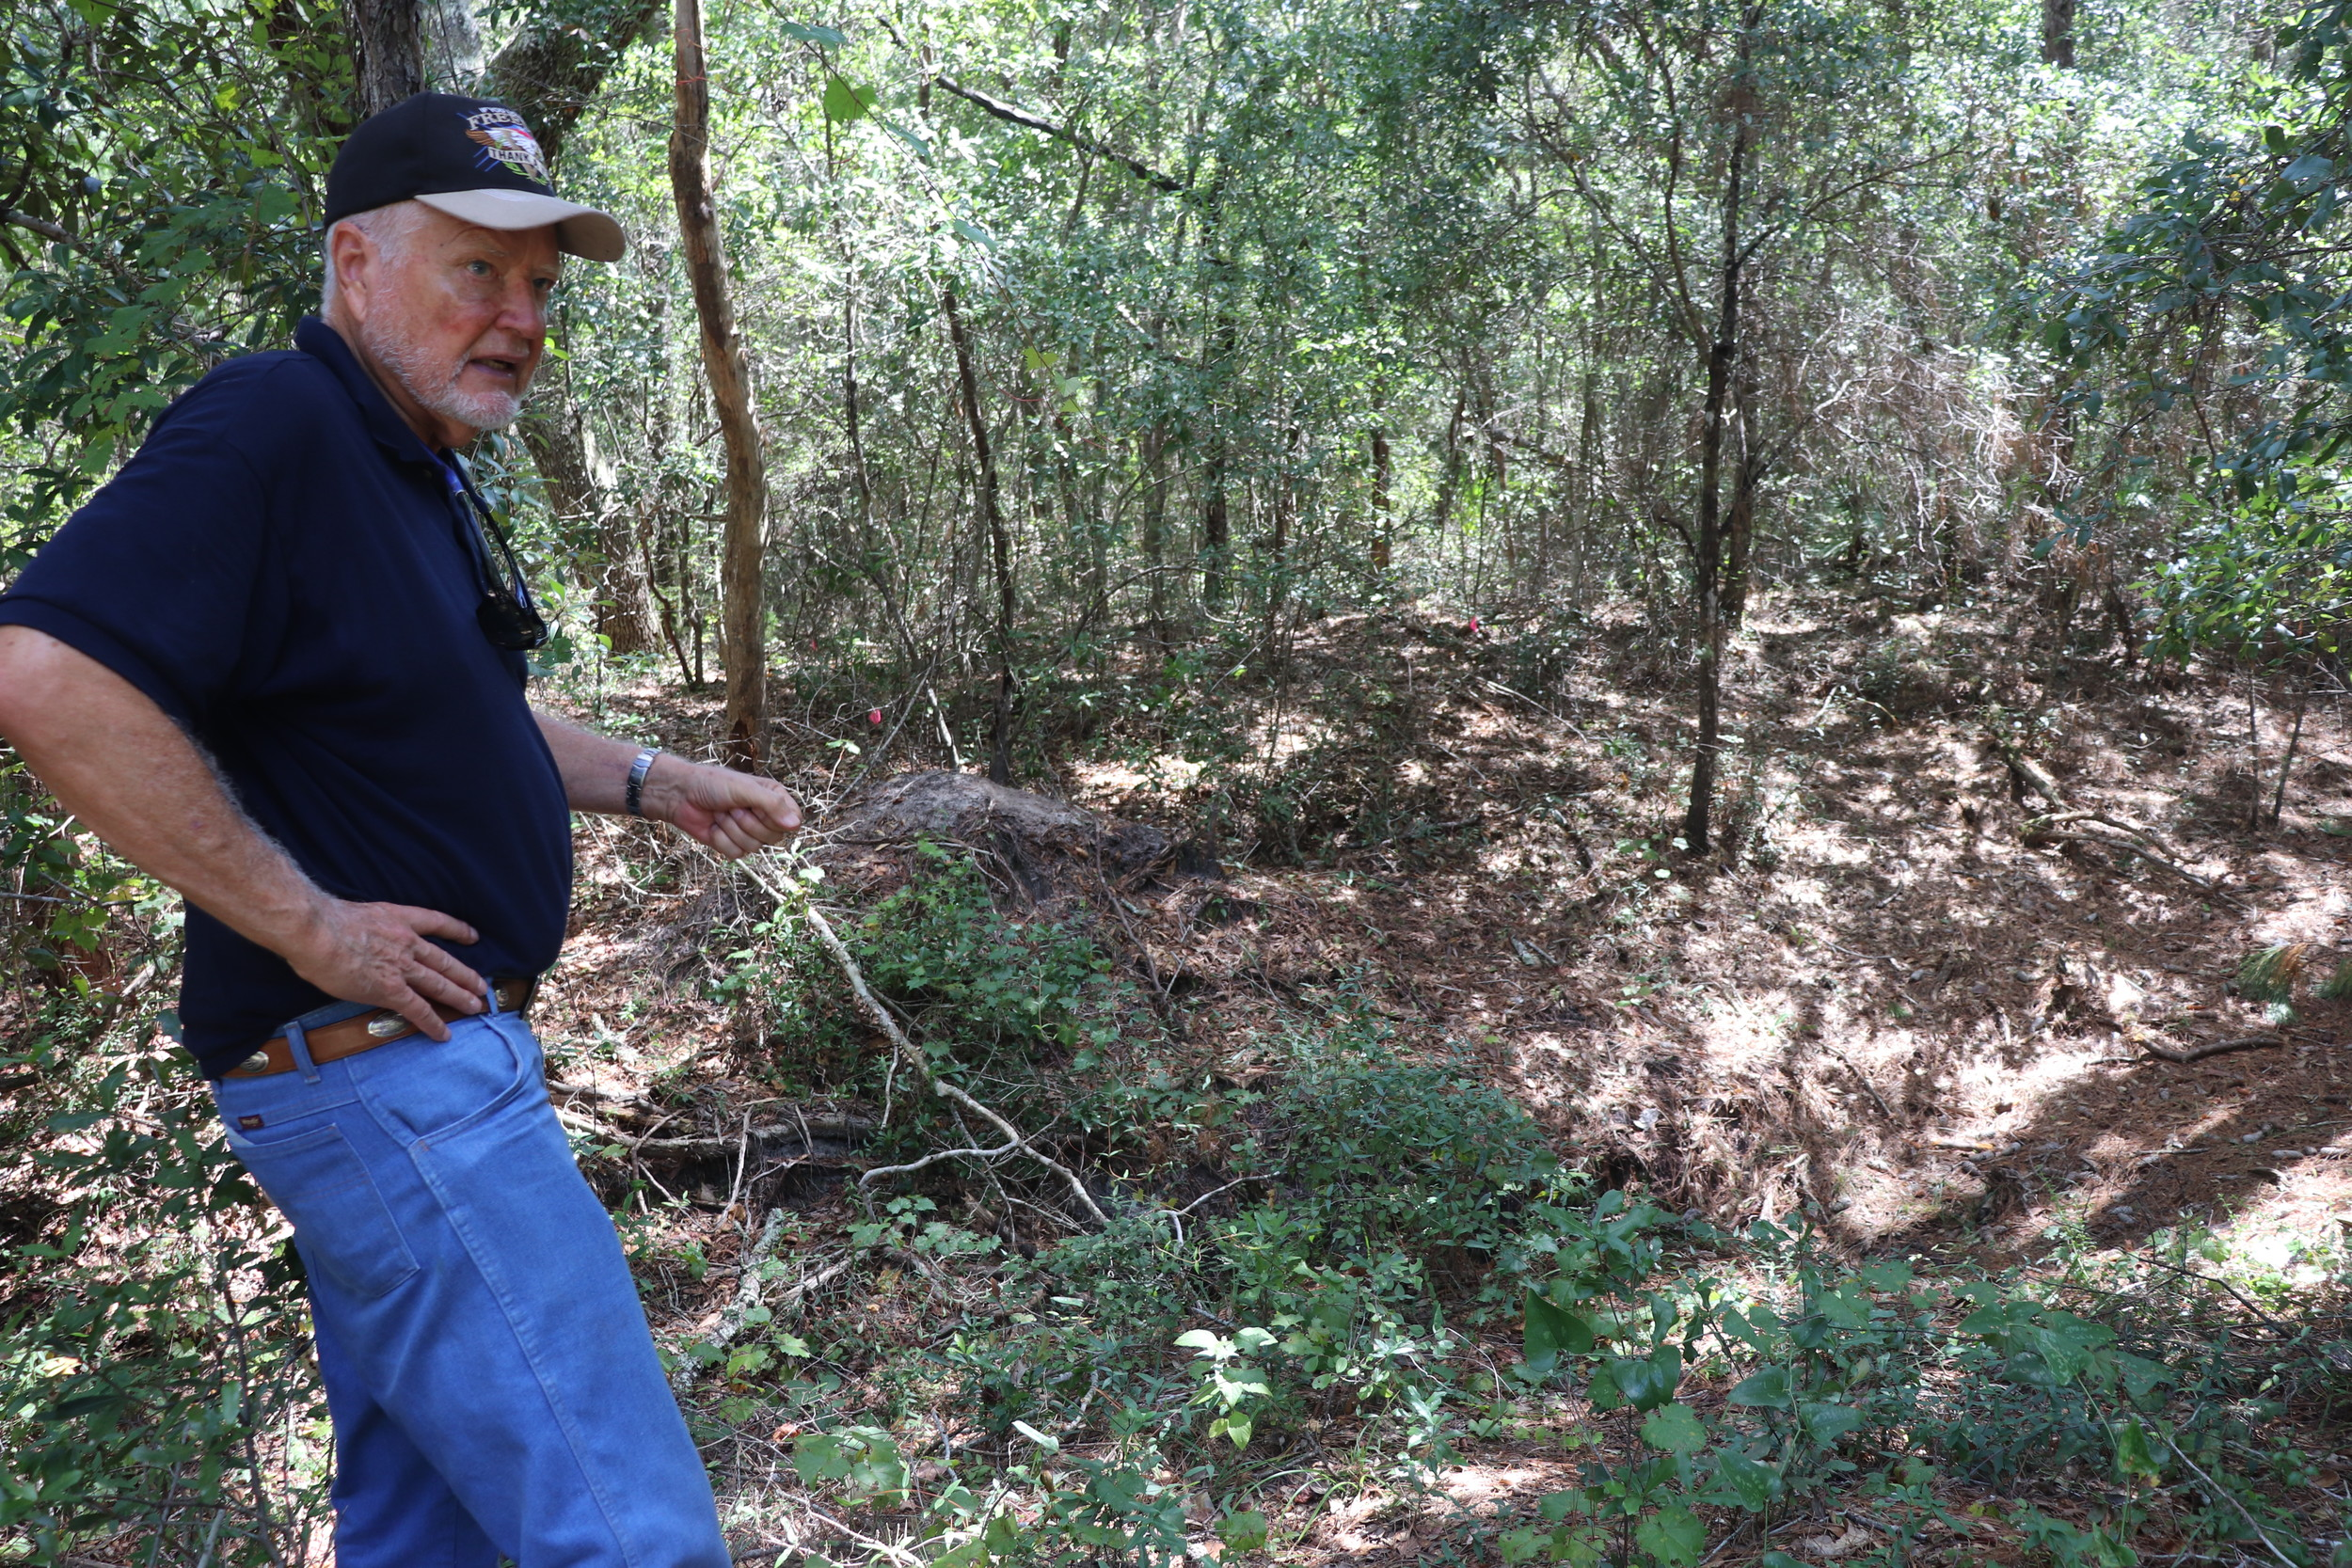 Harry King has devoted years to finding the Indian Canal on Fort Morgan. His efforts have uncovered a site that archeologists believe is 1,400 years old and is one of the only surviving sites of its kind.